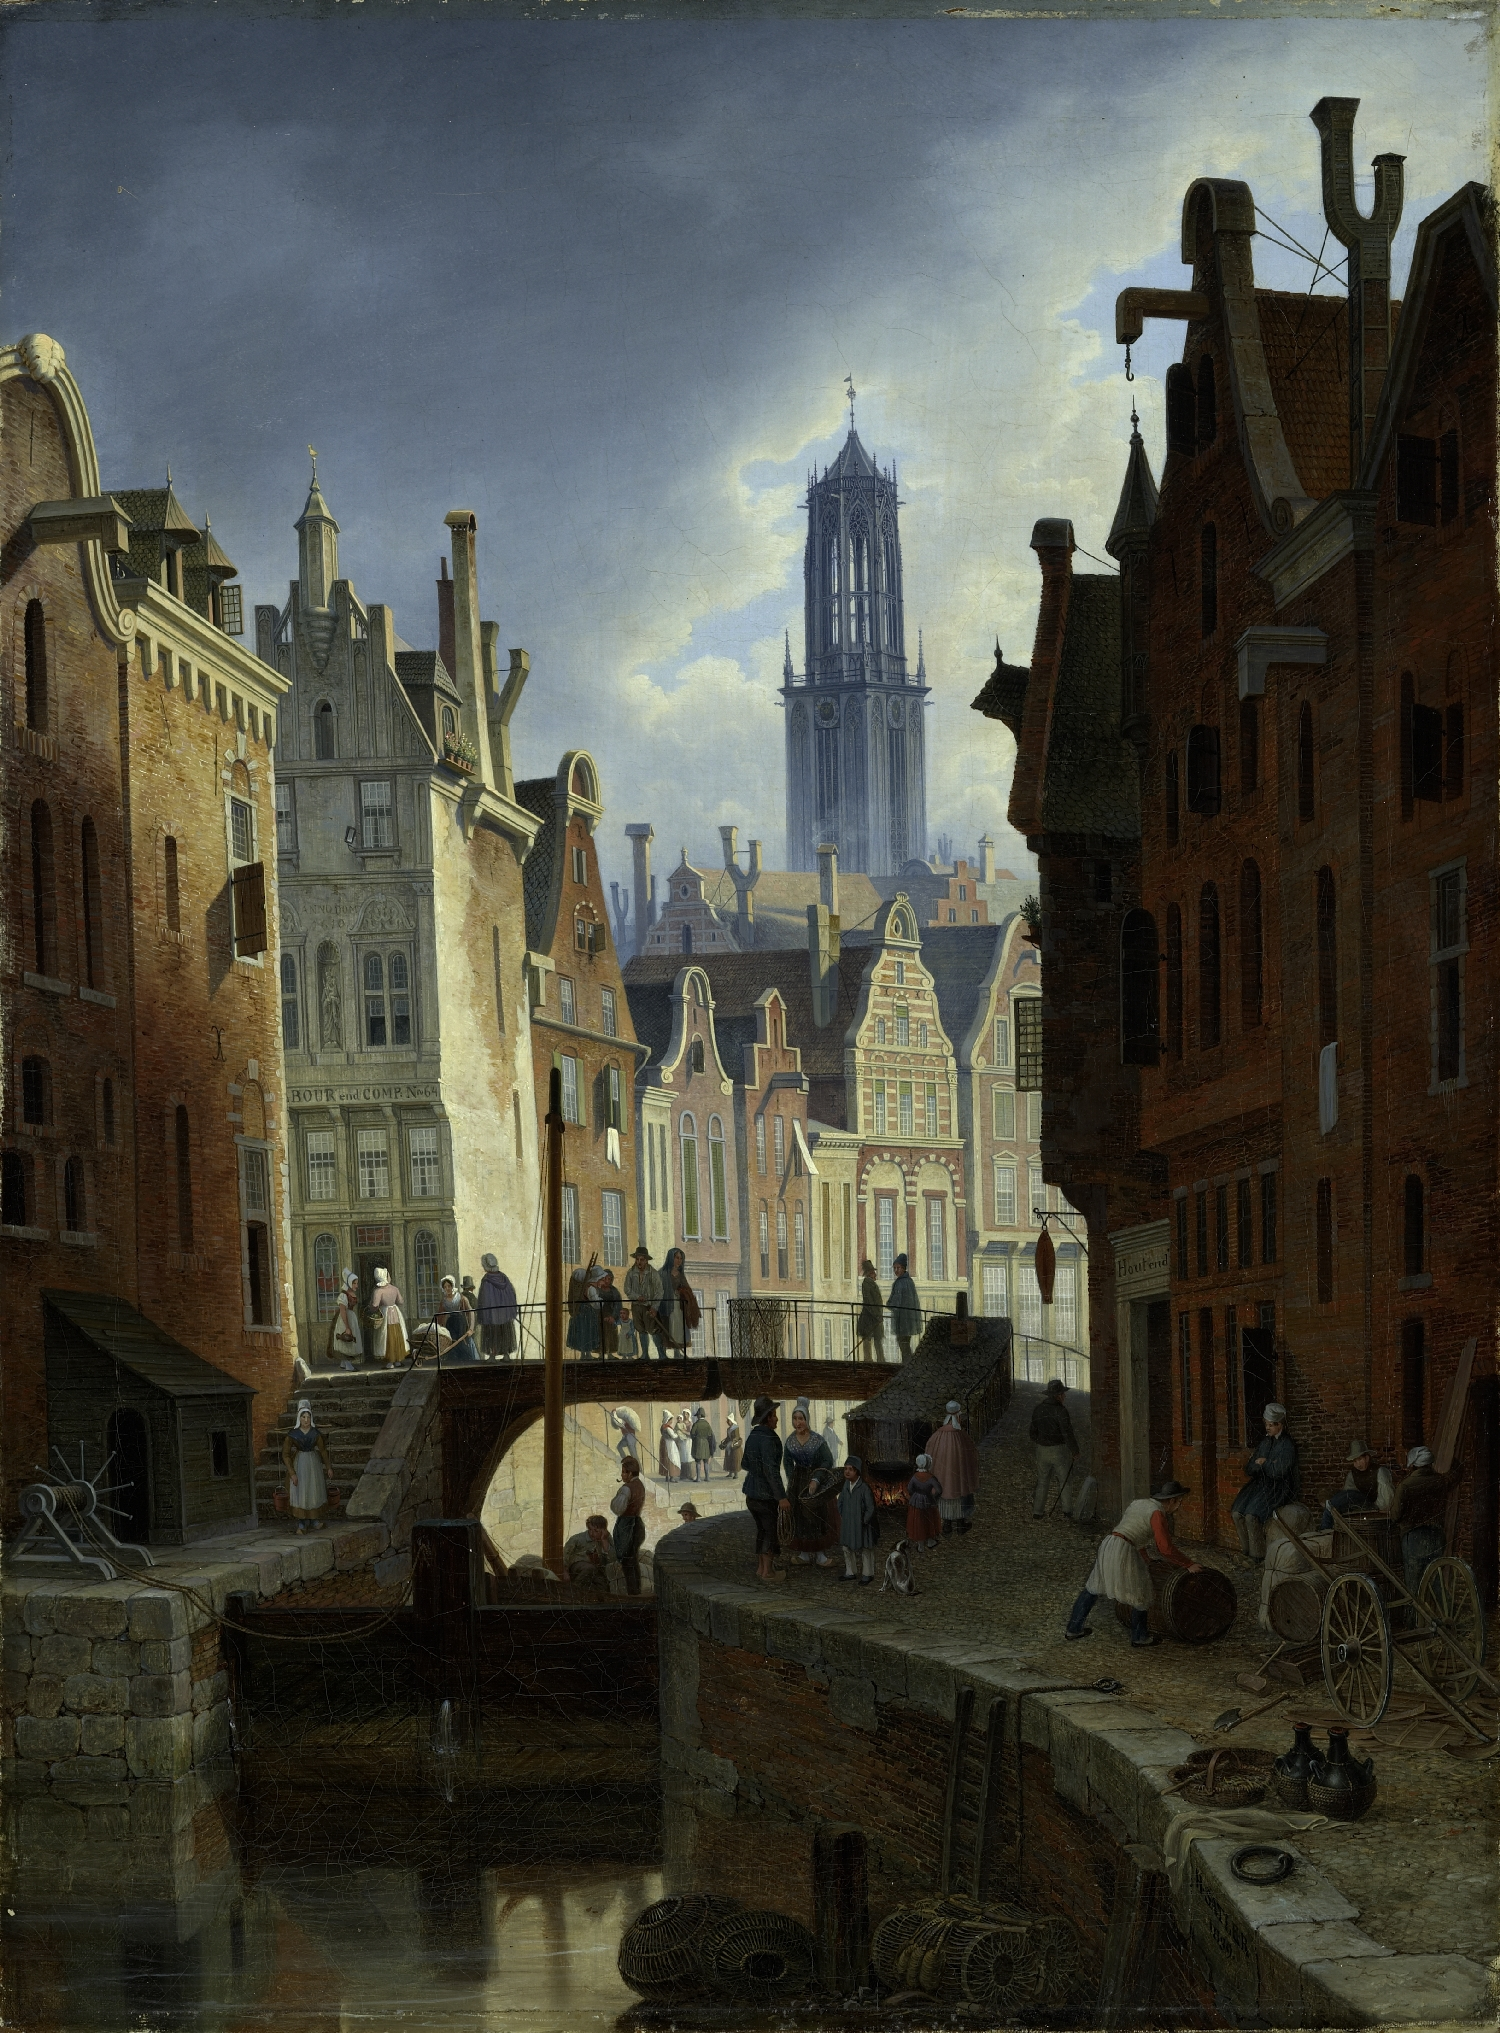 Gracht in Utrecht, Hubert Sattler, 1839, inv. no. 58-30